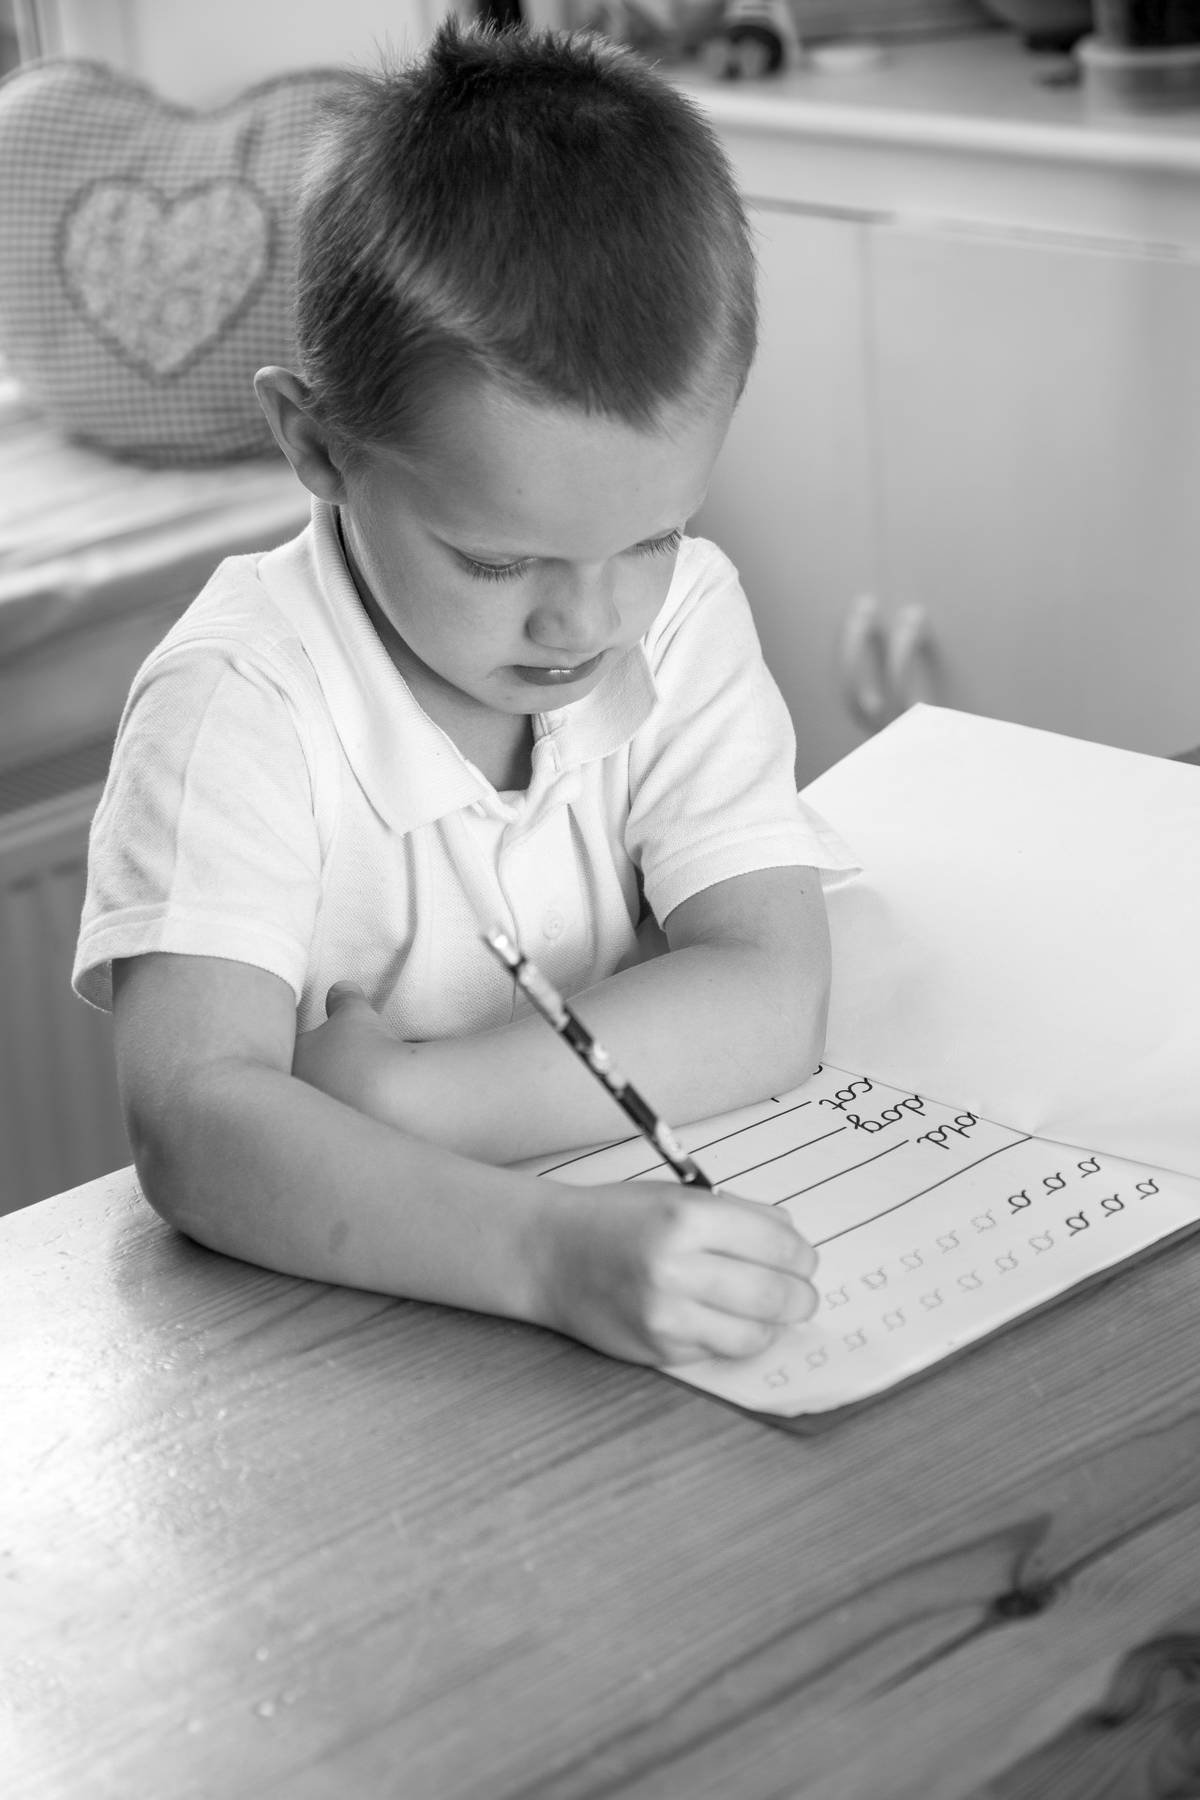 Help Parents Deal with Homework: Advice for Teachers (Grades 3-8) - TeacherVision